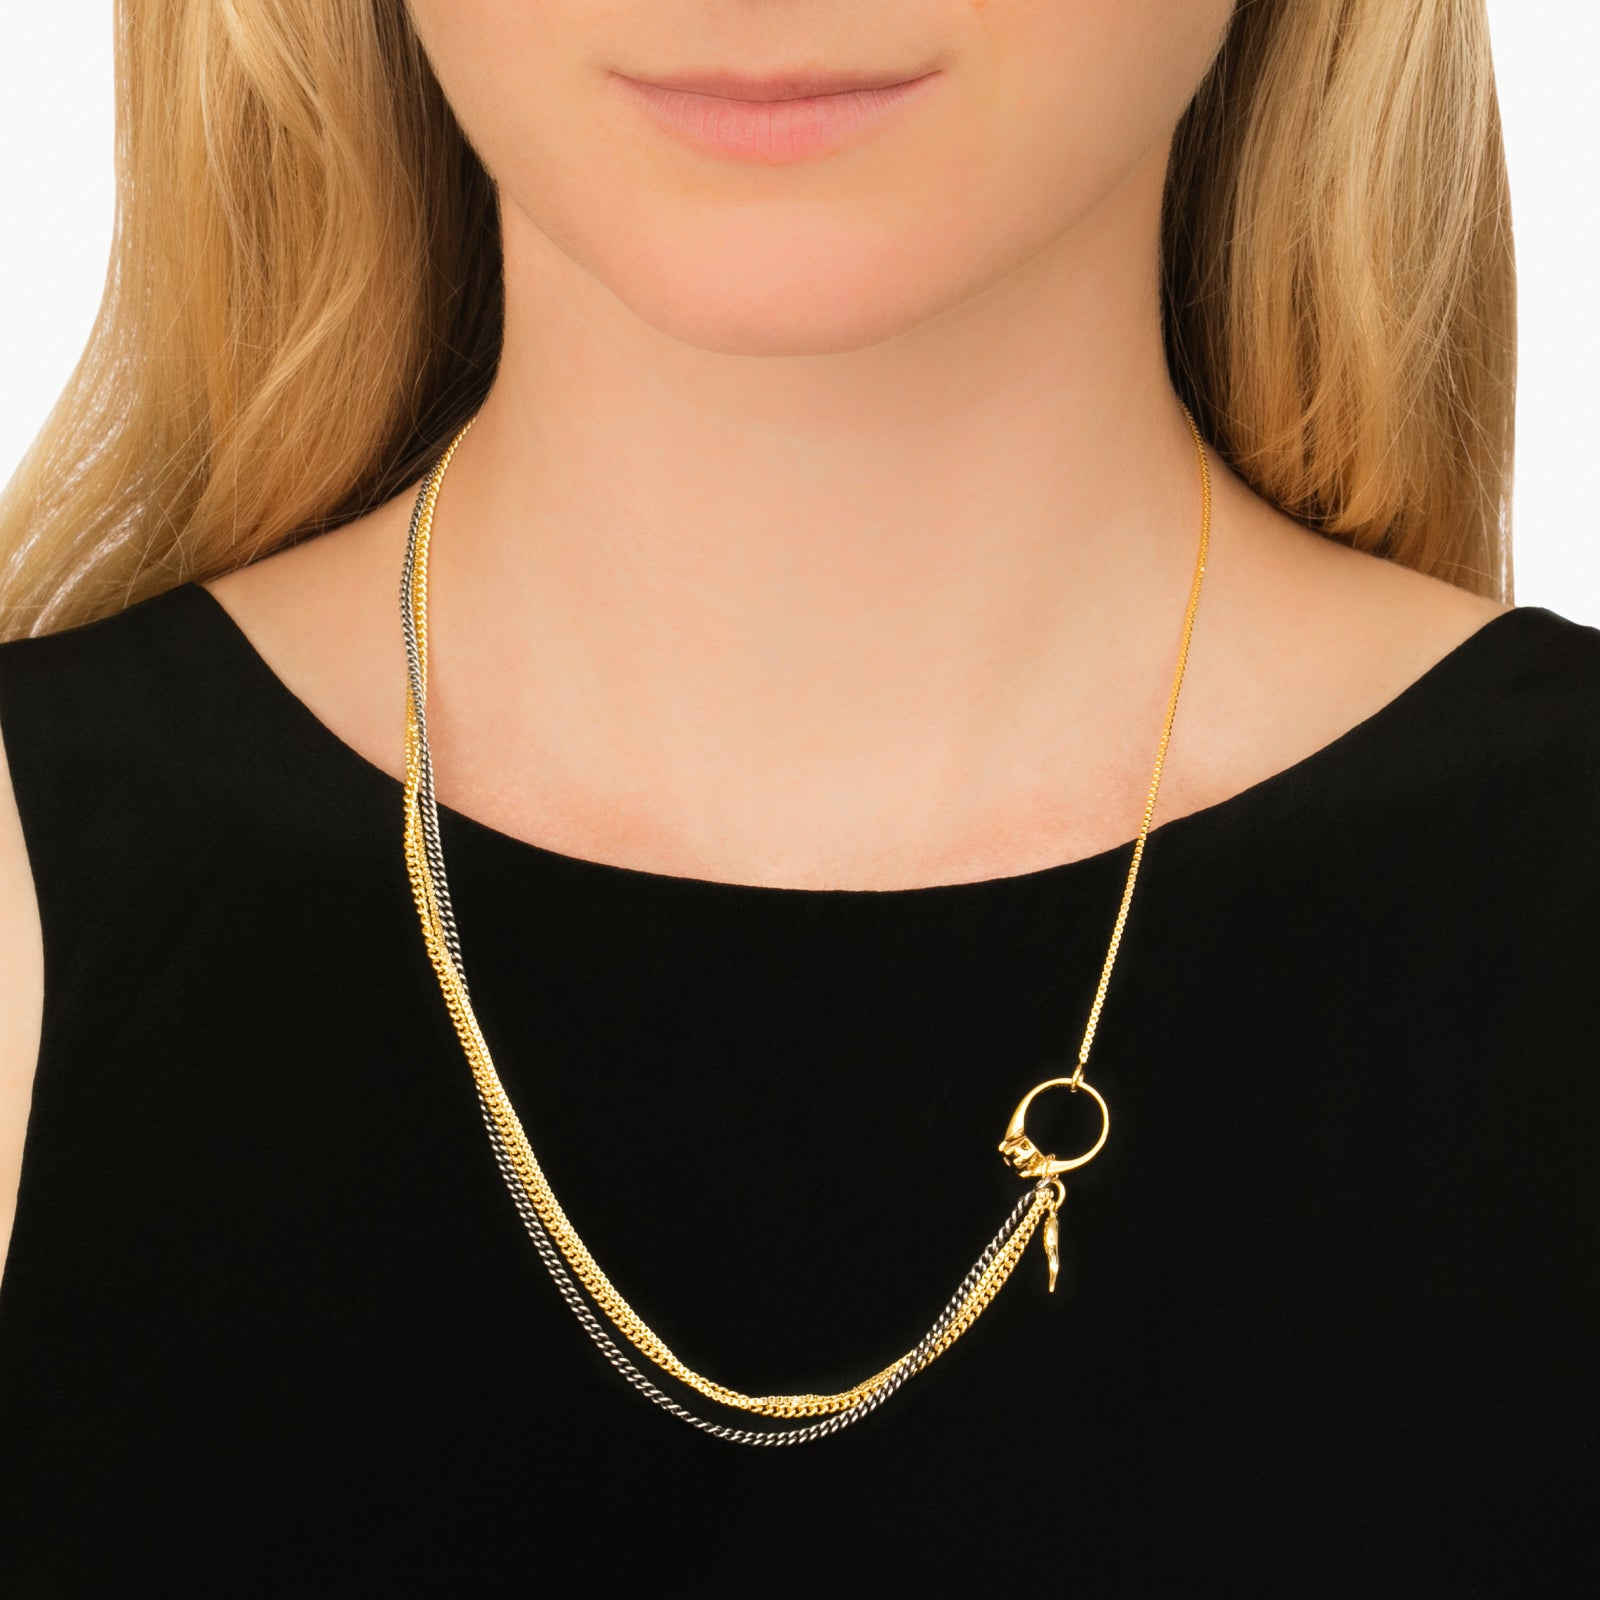 Little Horn Chain Necklace - Ioselliani - Necklaces | Broken English Jewelry